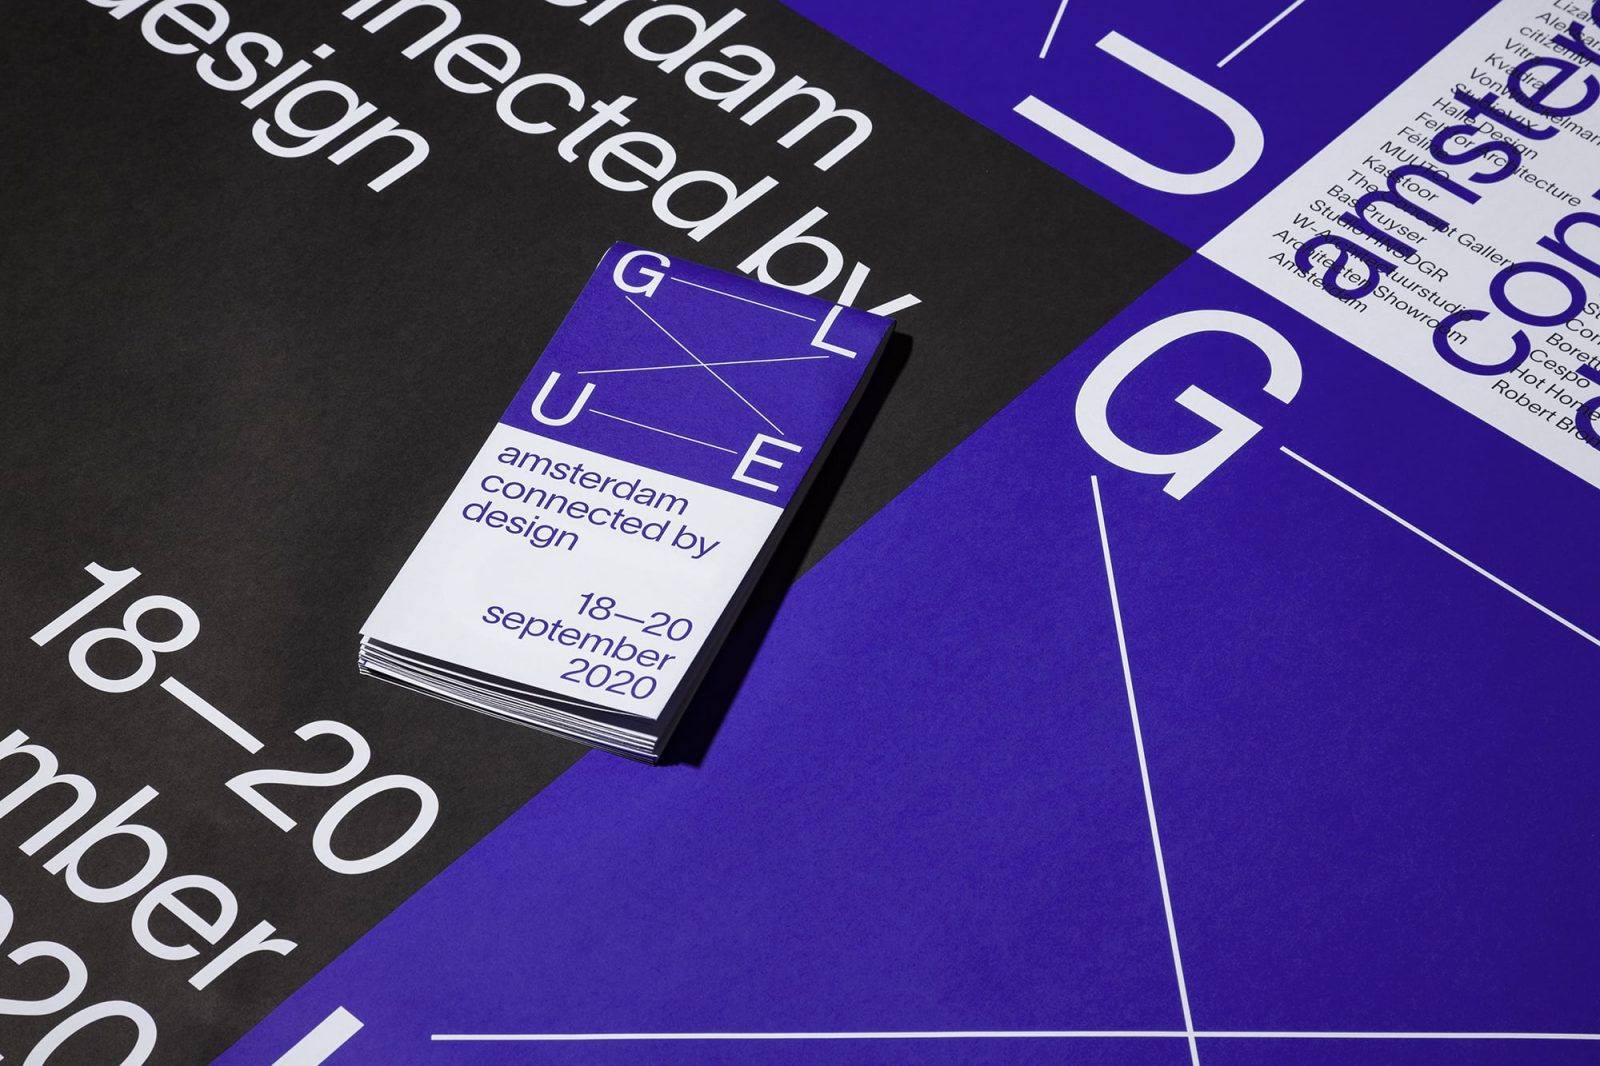 GLUE Amsterdam connected by design festival visual identity